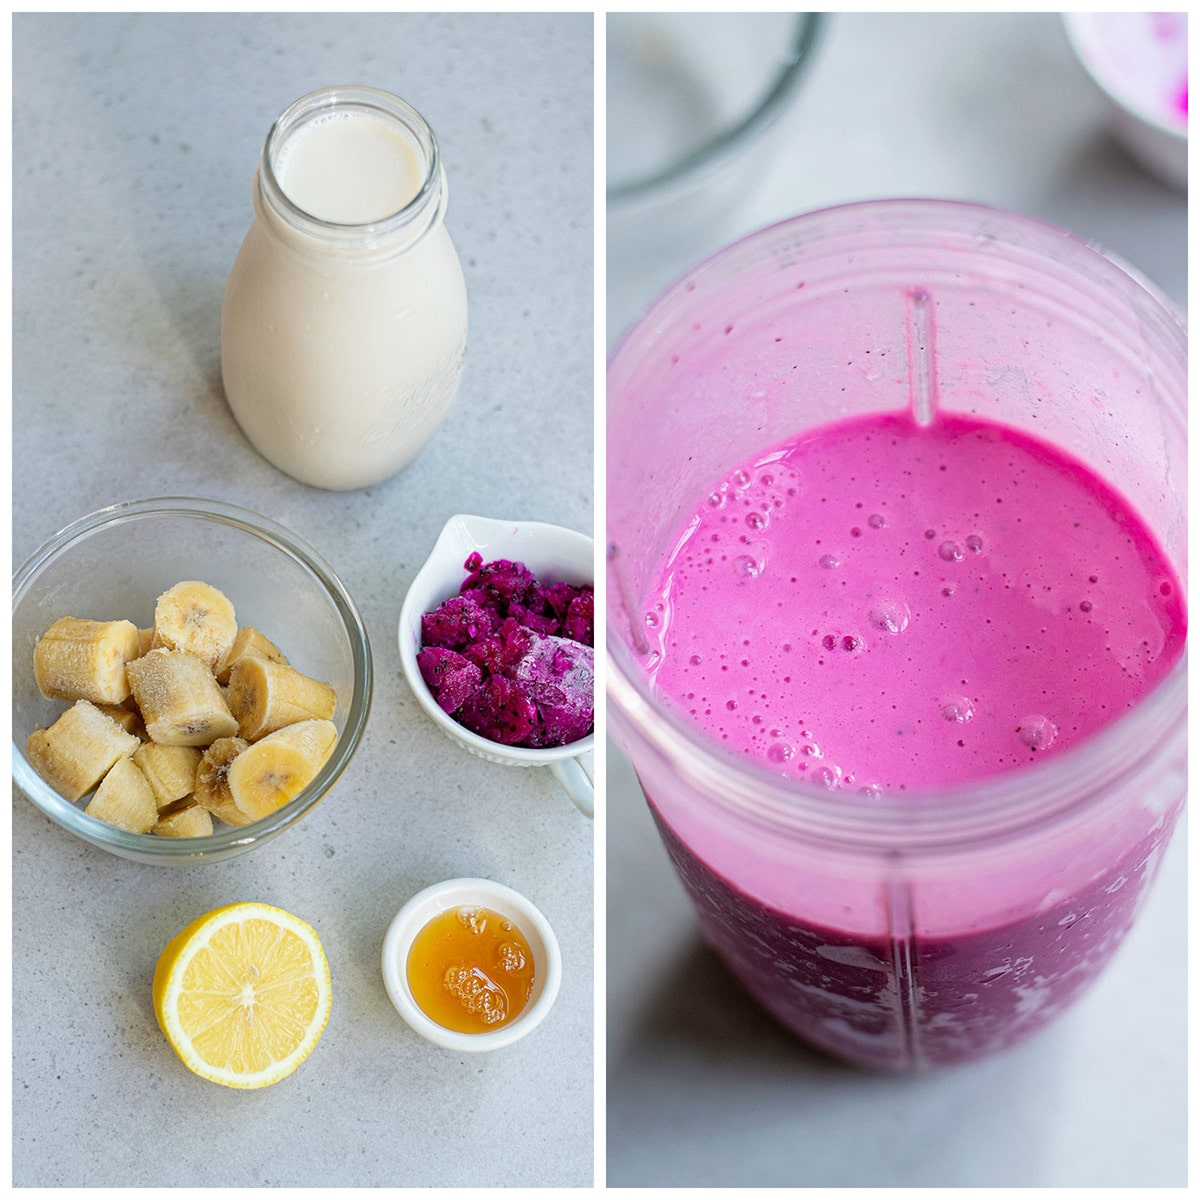 a collage with two photos, a photo showing bananas, milk, honey, lemon, and dragon fruit. The other photo showing all the ingredients blended in a blender.